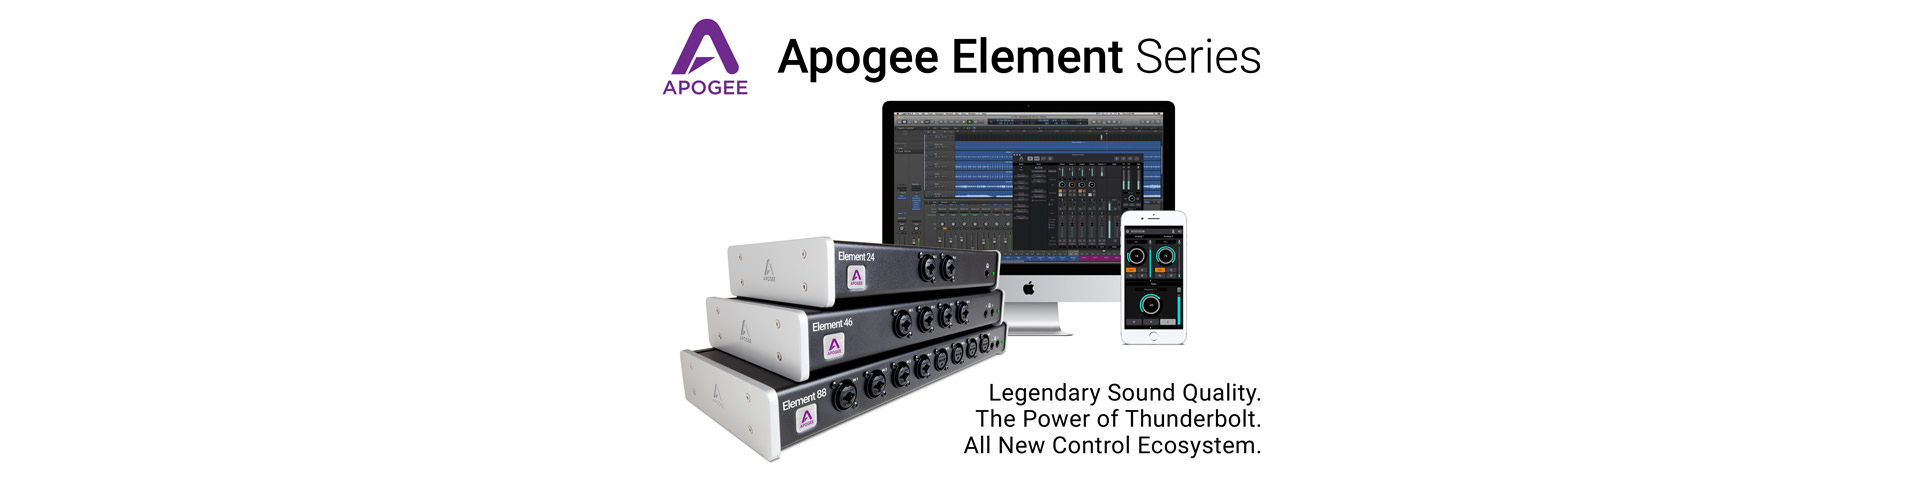 Apogee-Element-Series